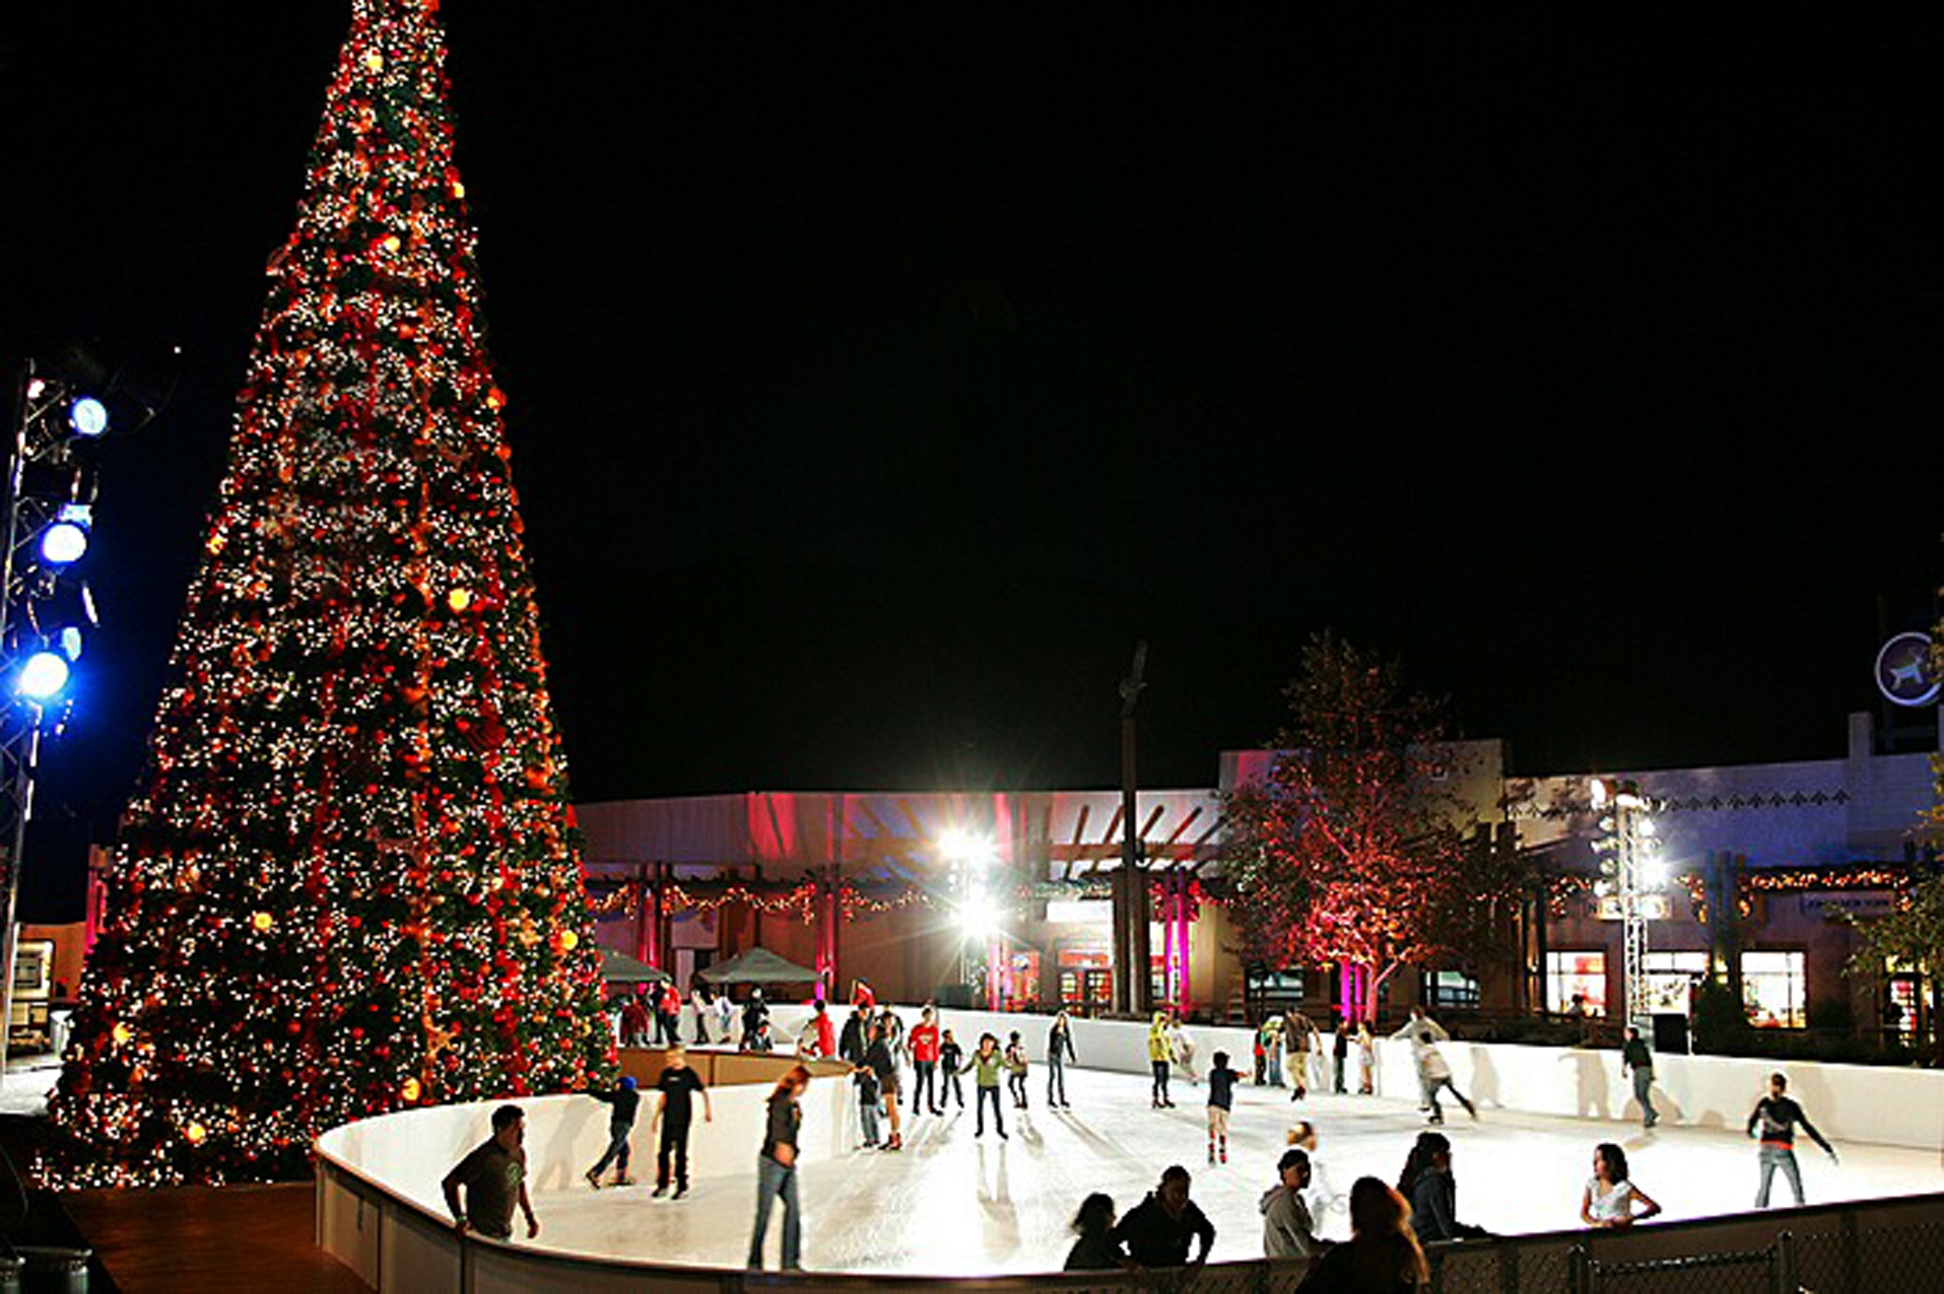 Skiers at the Viejas Outdoor Skating Rink